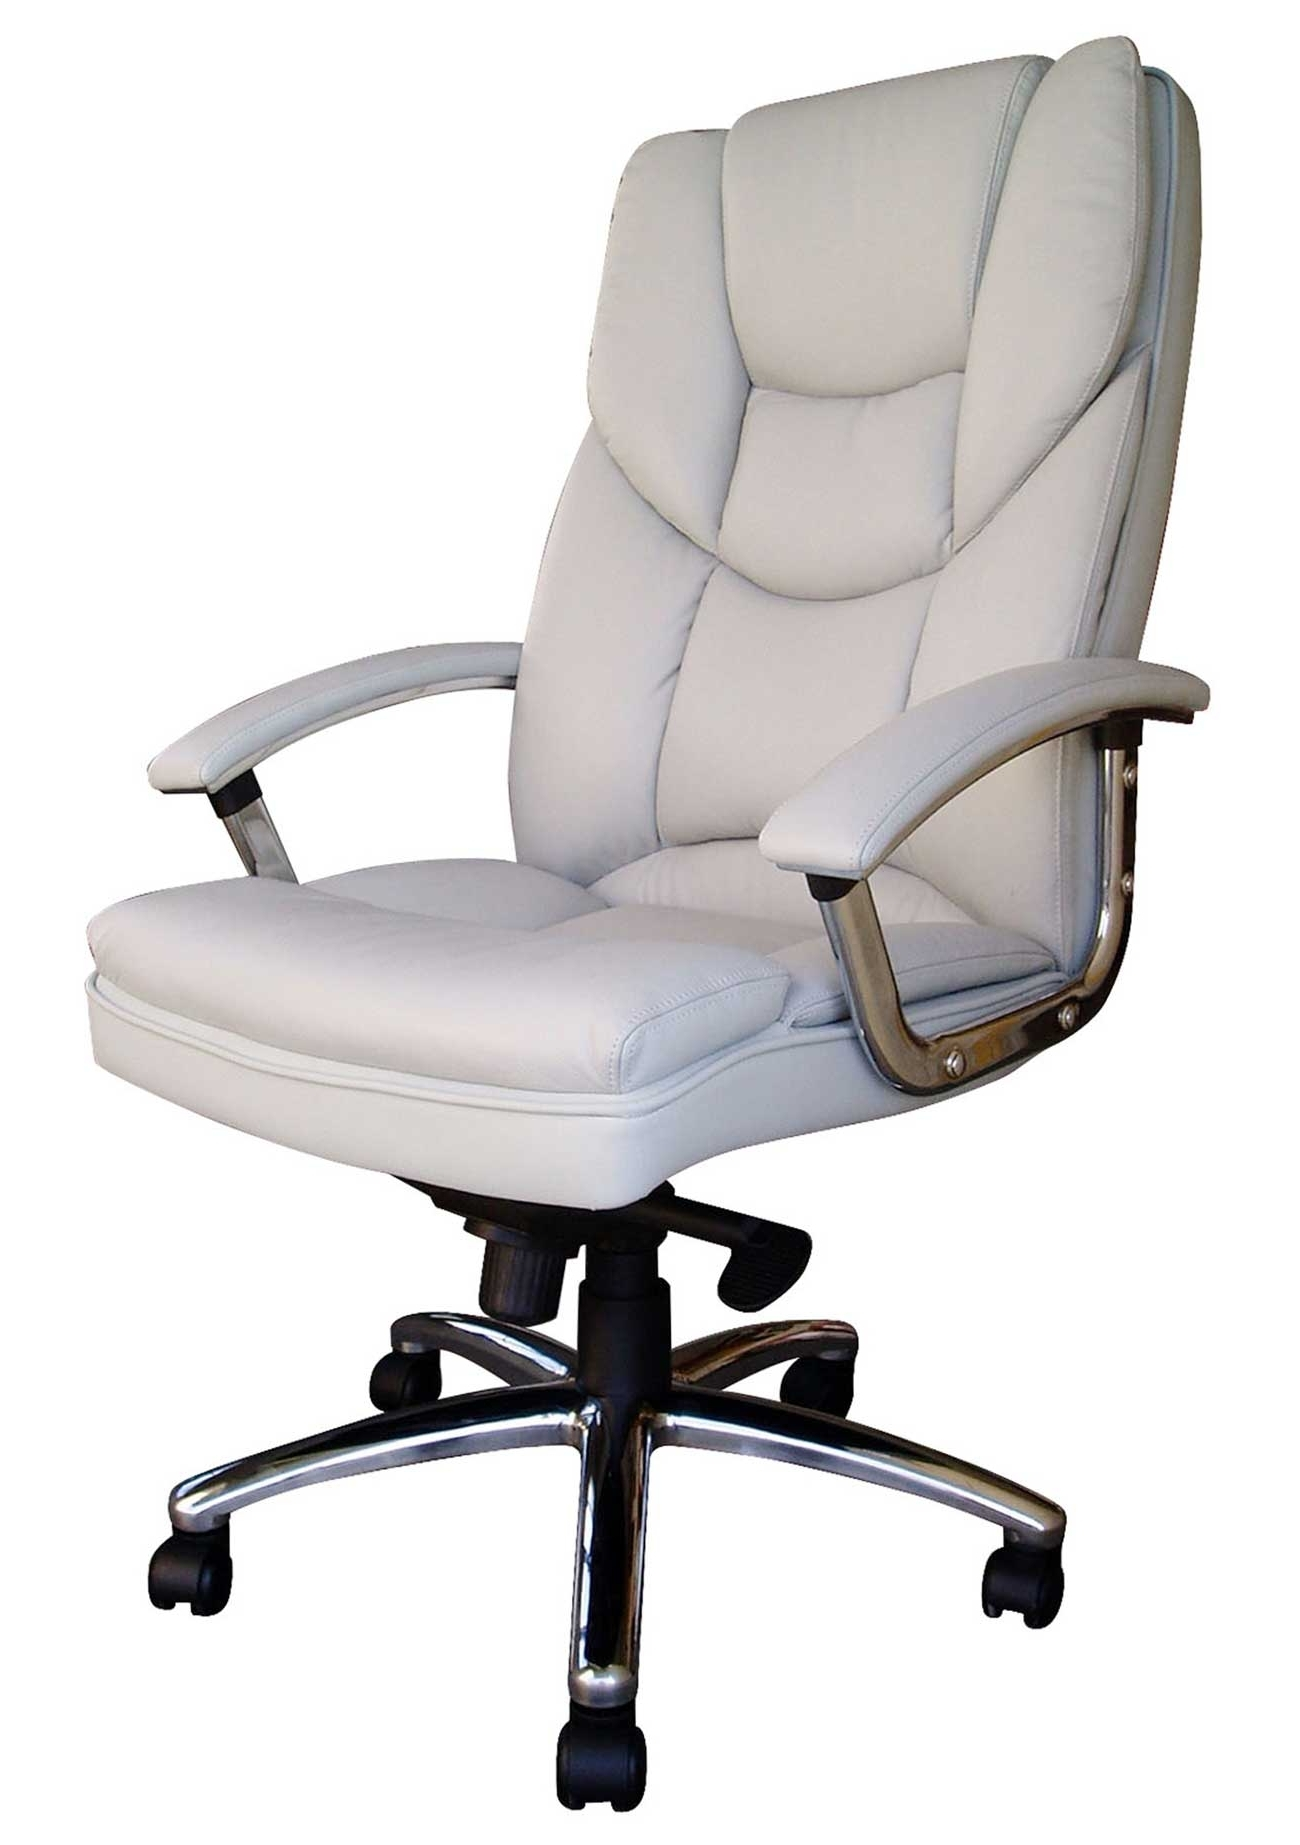 Well Known Leather Swivel Recliner Executive Office Chairs Intended For Funiture: White Office Furniture Ideas Using White Leather Swivel (View 19 of 20)